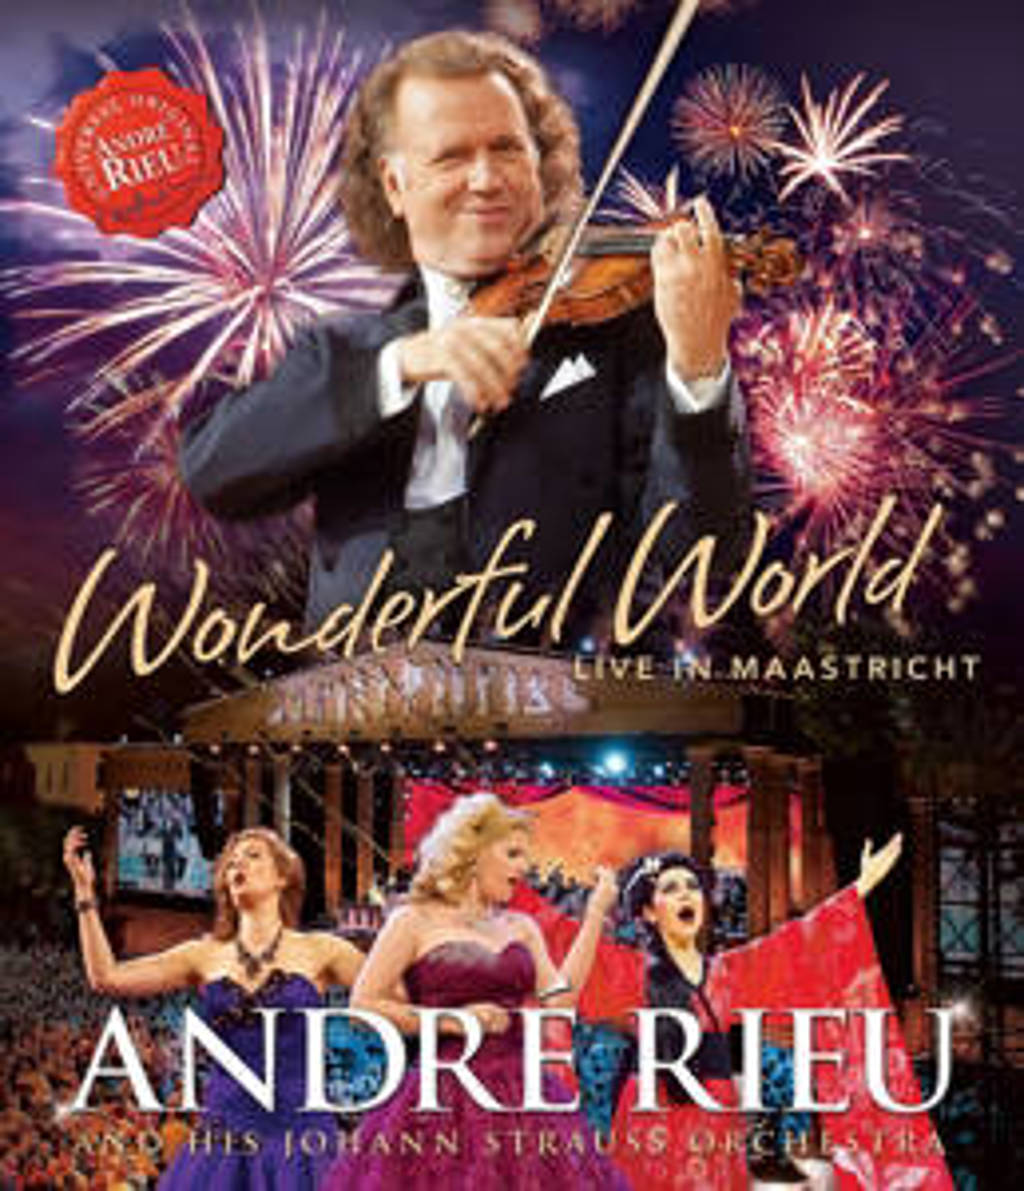 Andre Rieu - Wonderful World - Live in Maastricht (Blu-ray)